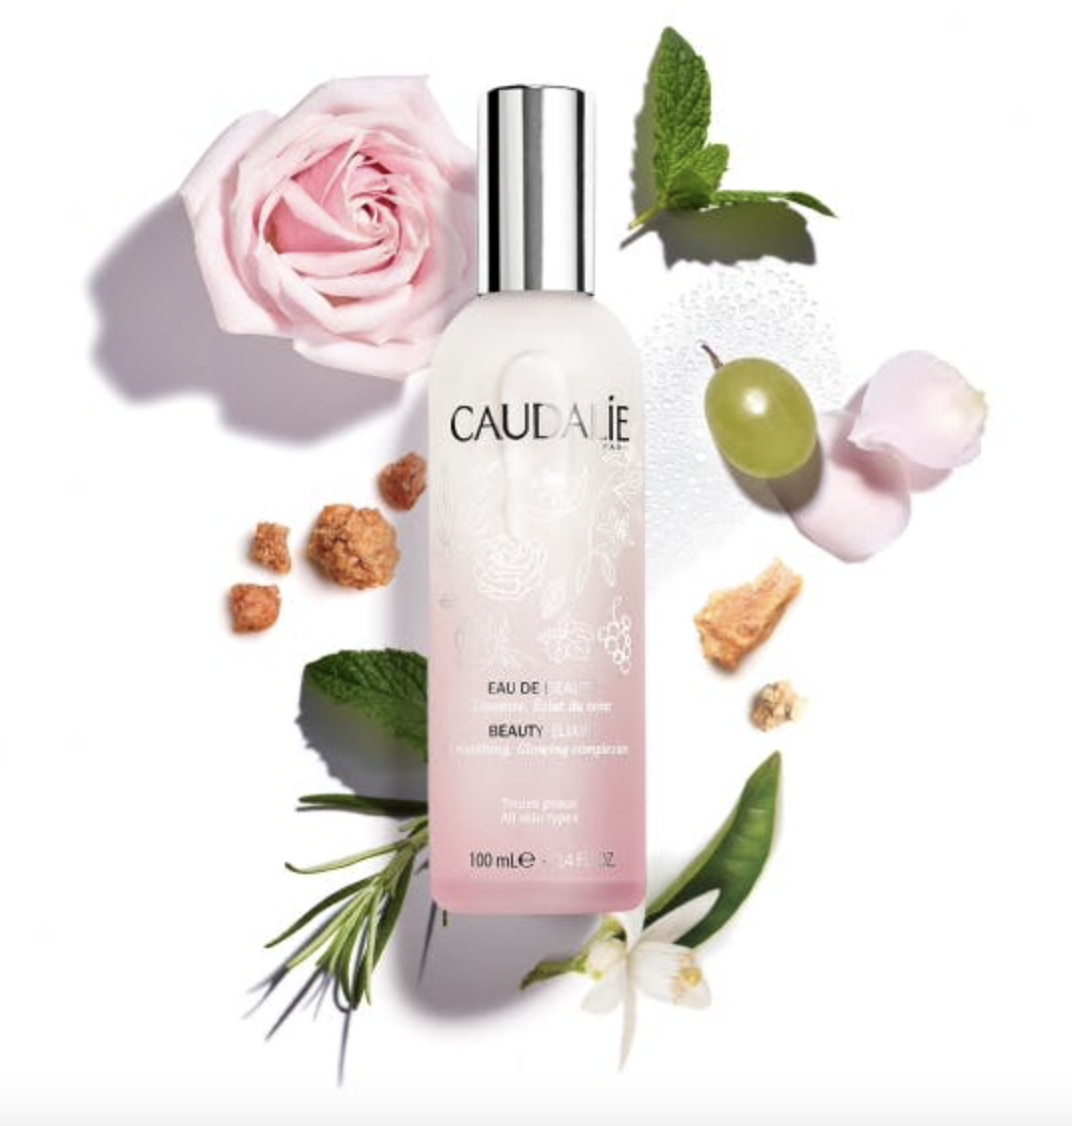 Caudalie: Friends & Family Sale! Up to 50% off